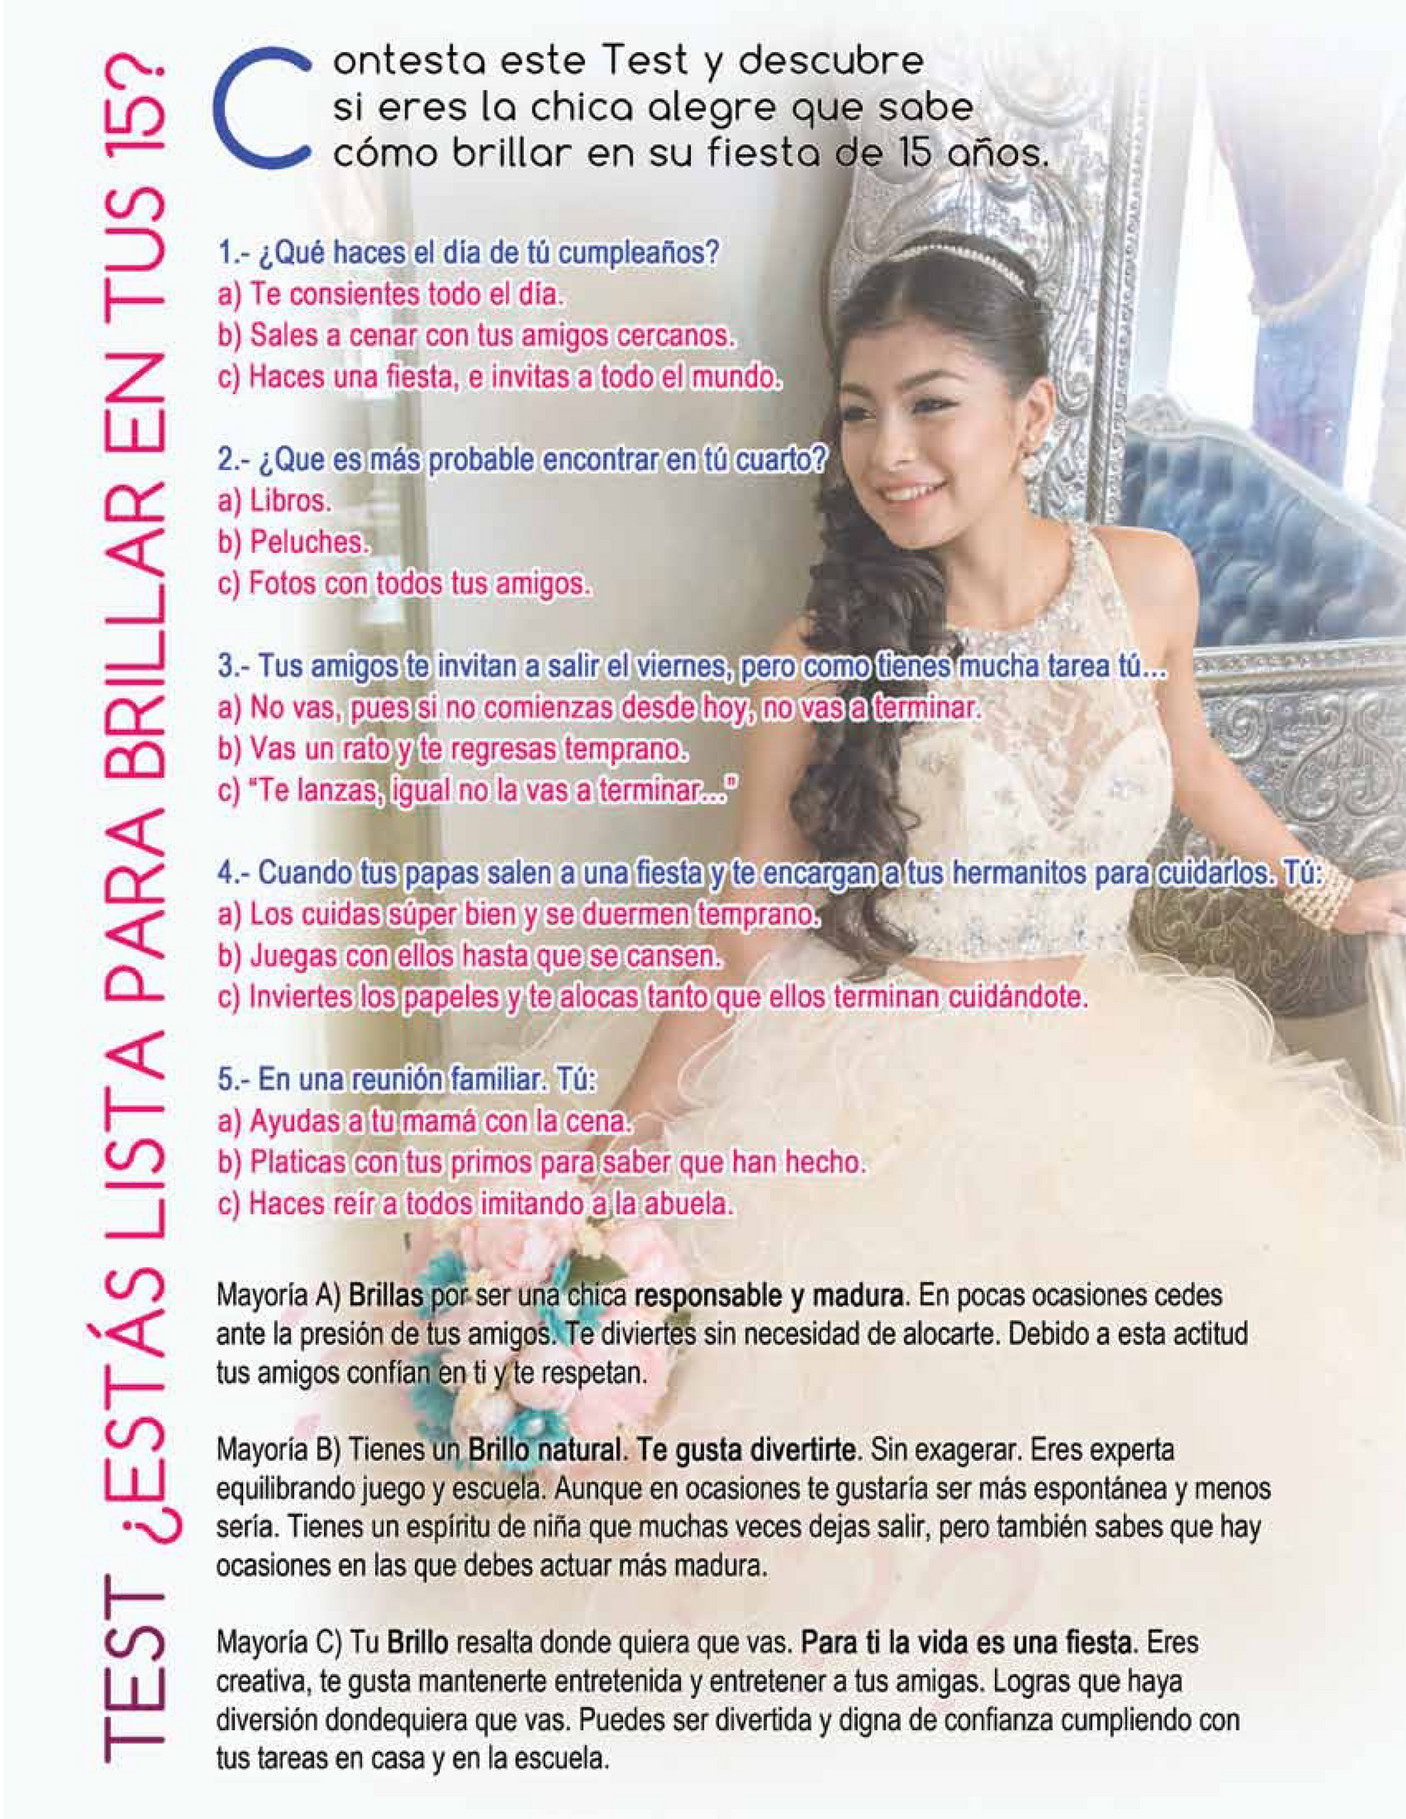 Amigas Maduras my publications - quinceaneras january 2016(web) - page 8-9